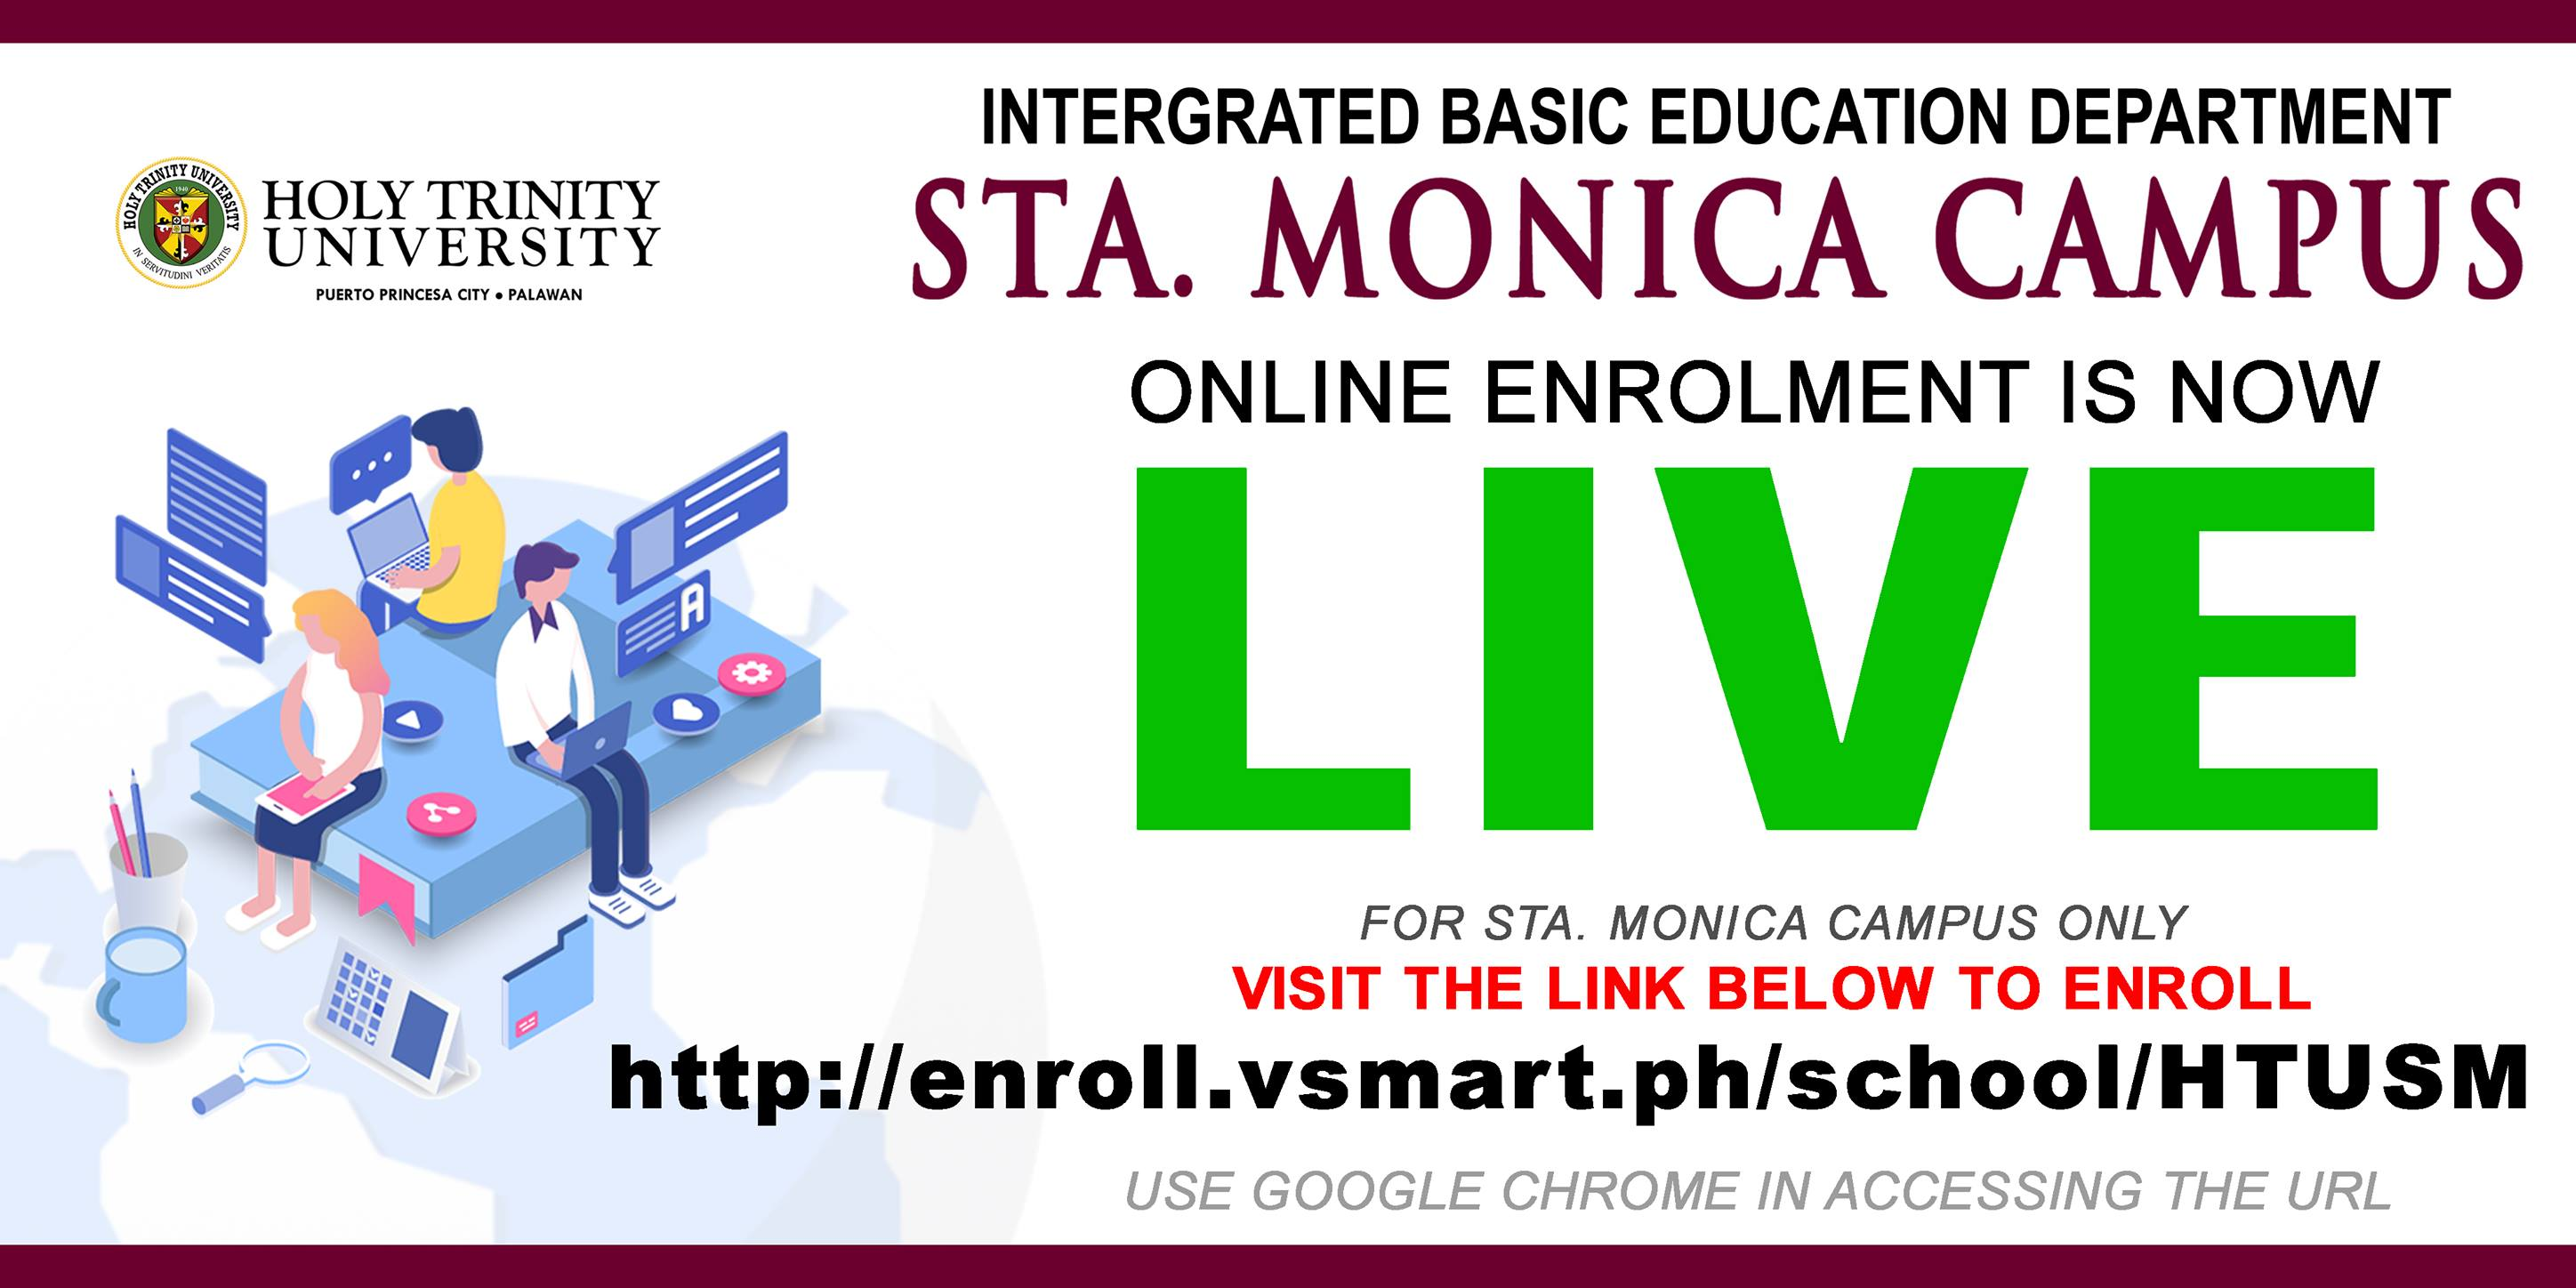 Sta. Monica Campus Online Enrollment